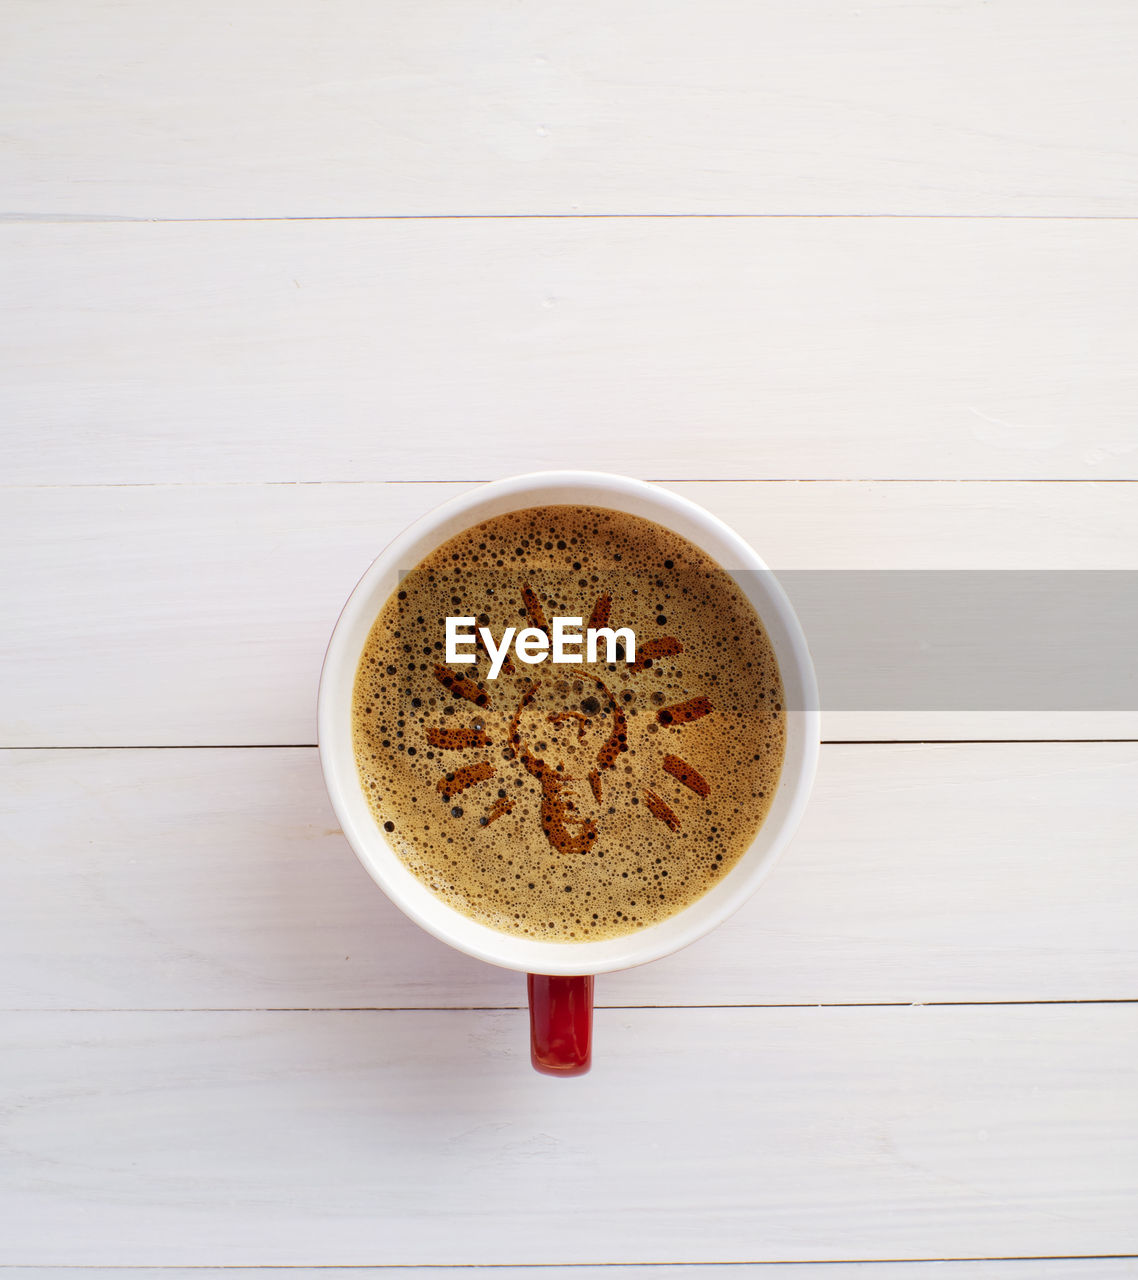 HIGH ANGLE VIEW OF COFFEE CUP WITH TEA